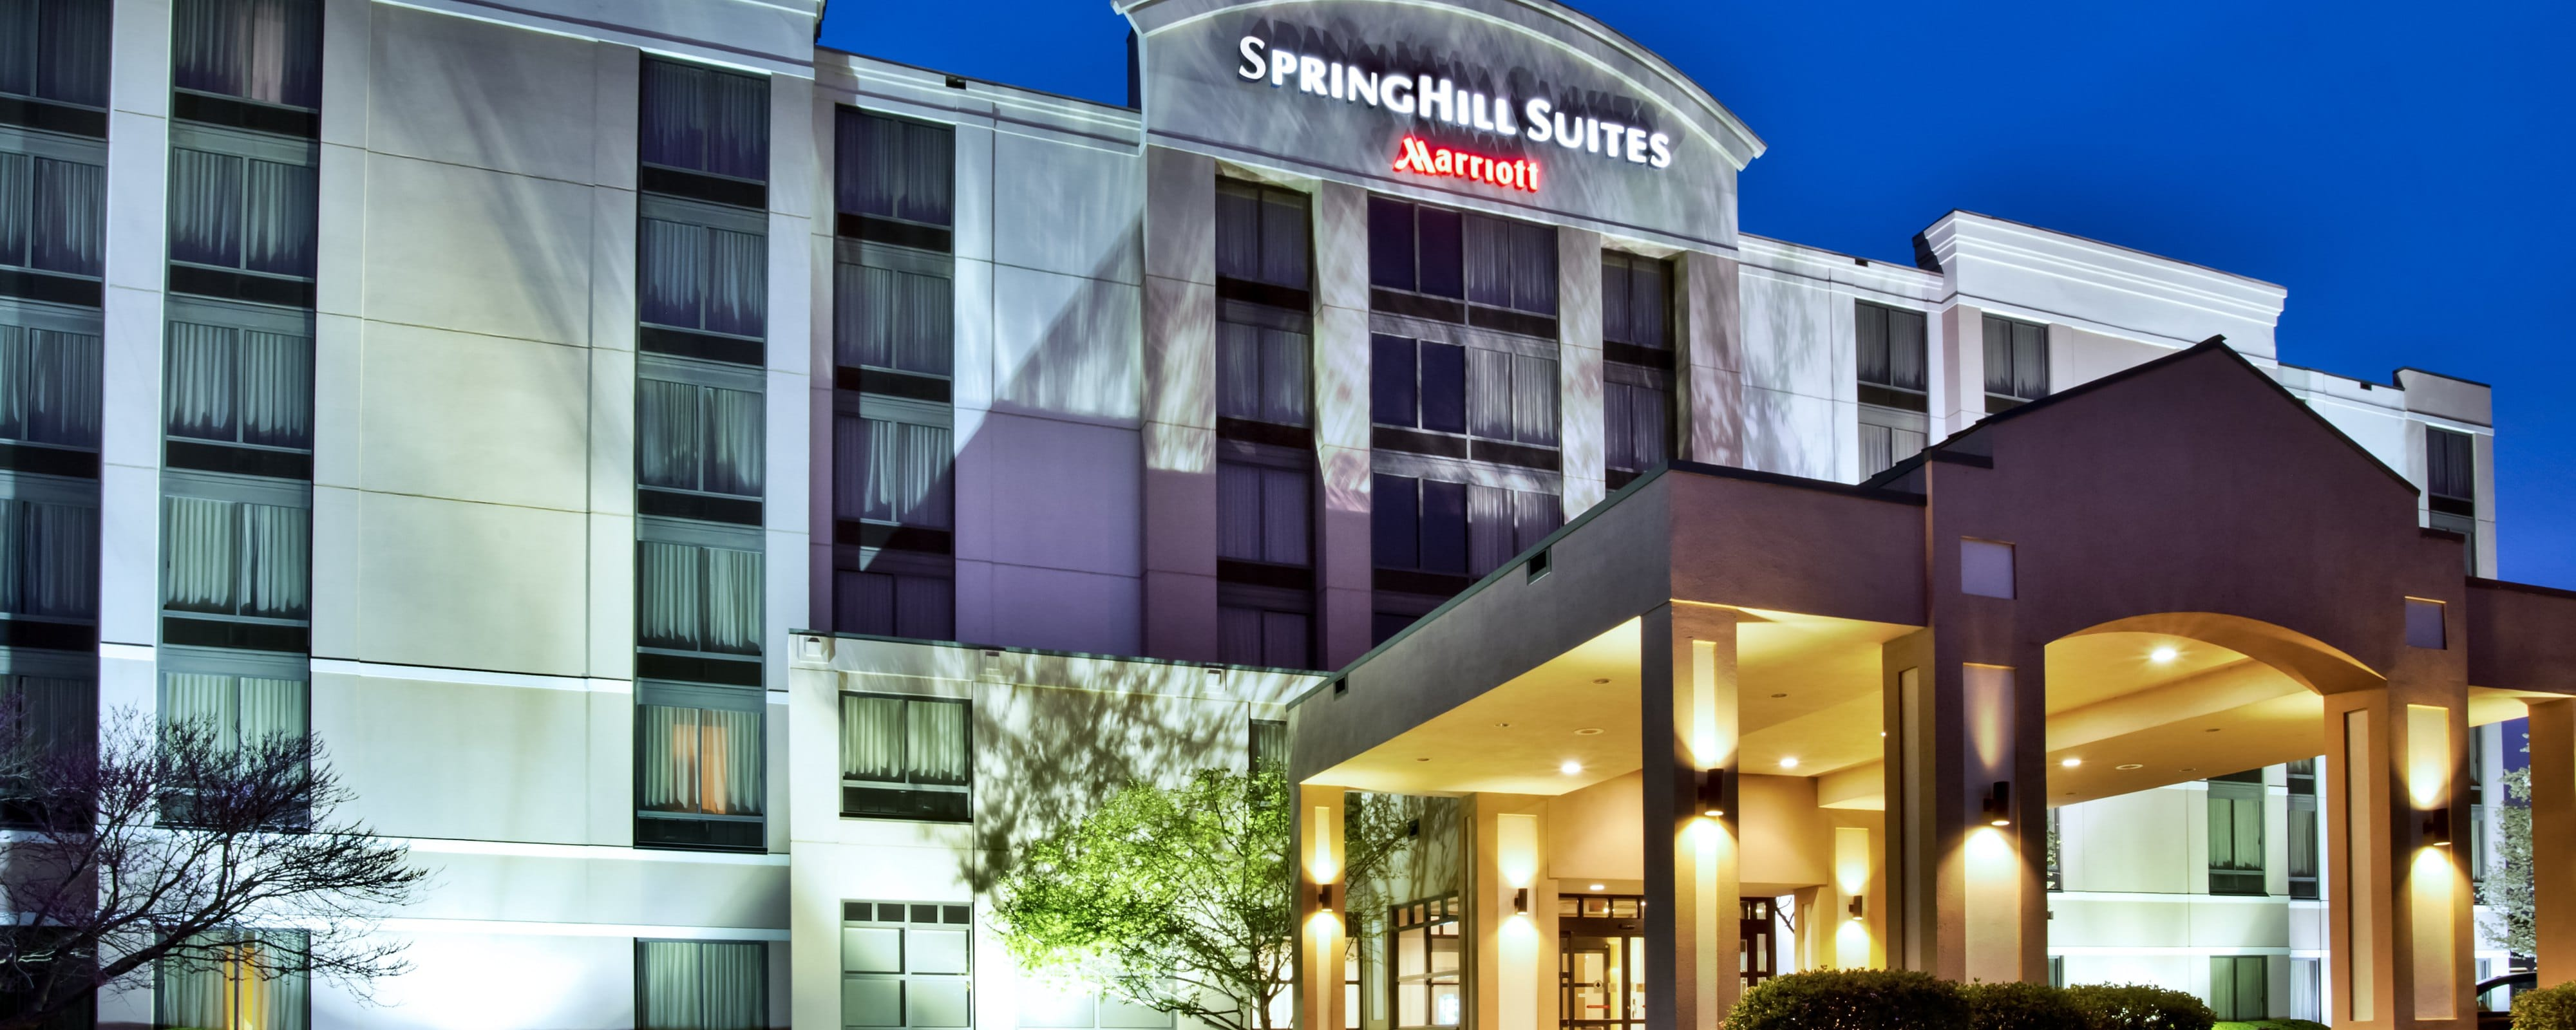 SpringHill Suites Chicago Southwest at Burr Ridge/Hinsdale Exterior